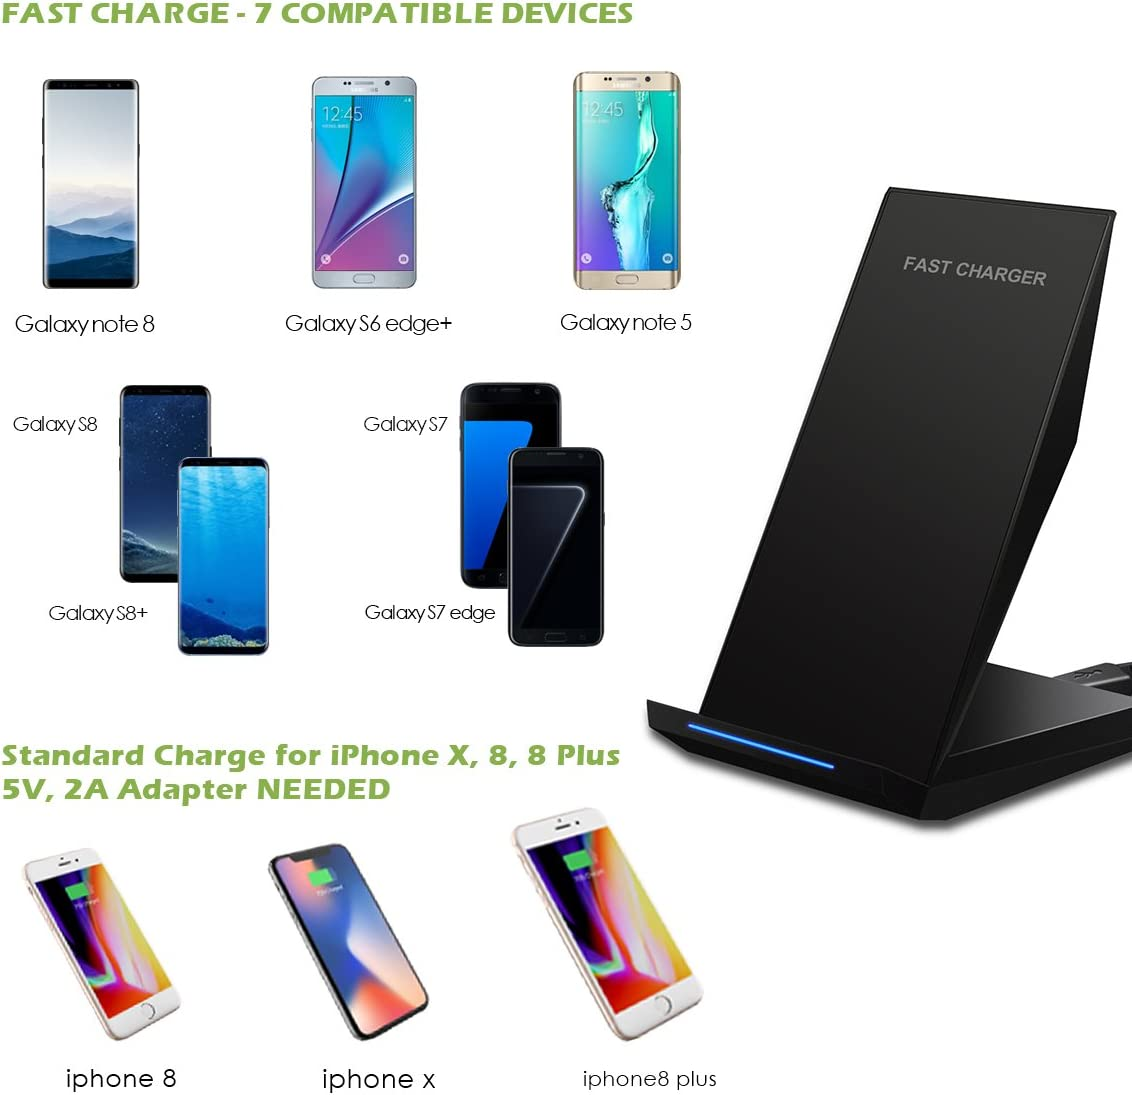 Standard Charger for iPhone X//8//8 Plus KeeKit Wireless Charger 2 Coils Qi Fast Wireless Charger Phone Quick Charging Stand for Samsung Galaxy S8 Plus//S8//Galaxy S7//S7 Edge//Note 5//S6 Edge Plus